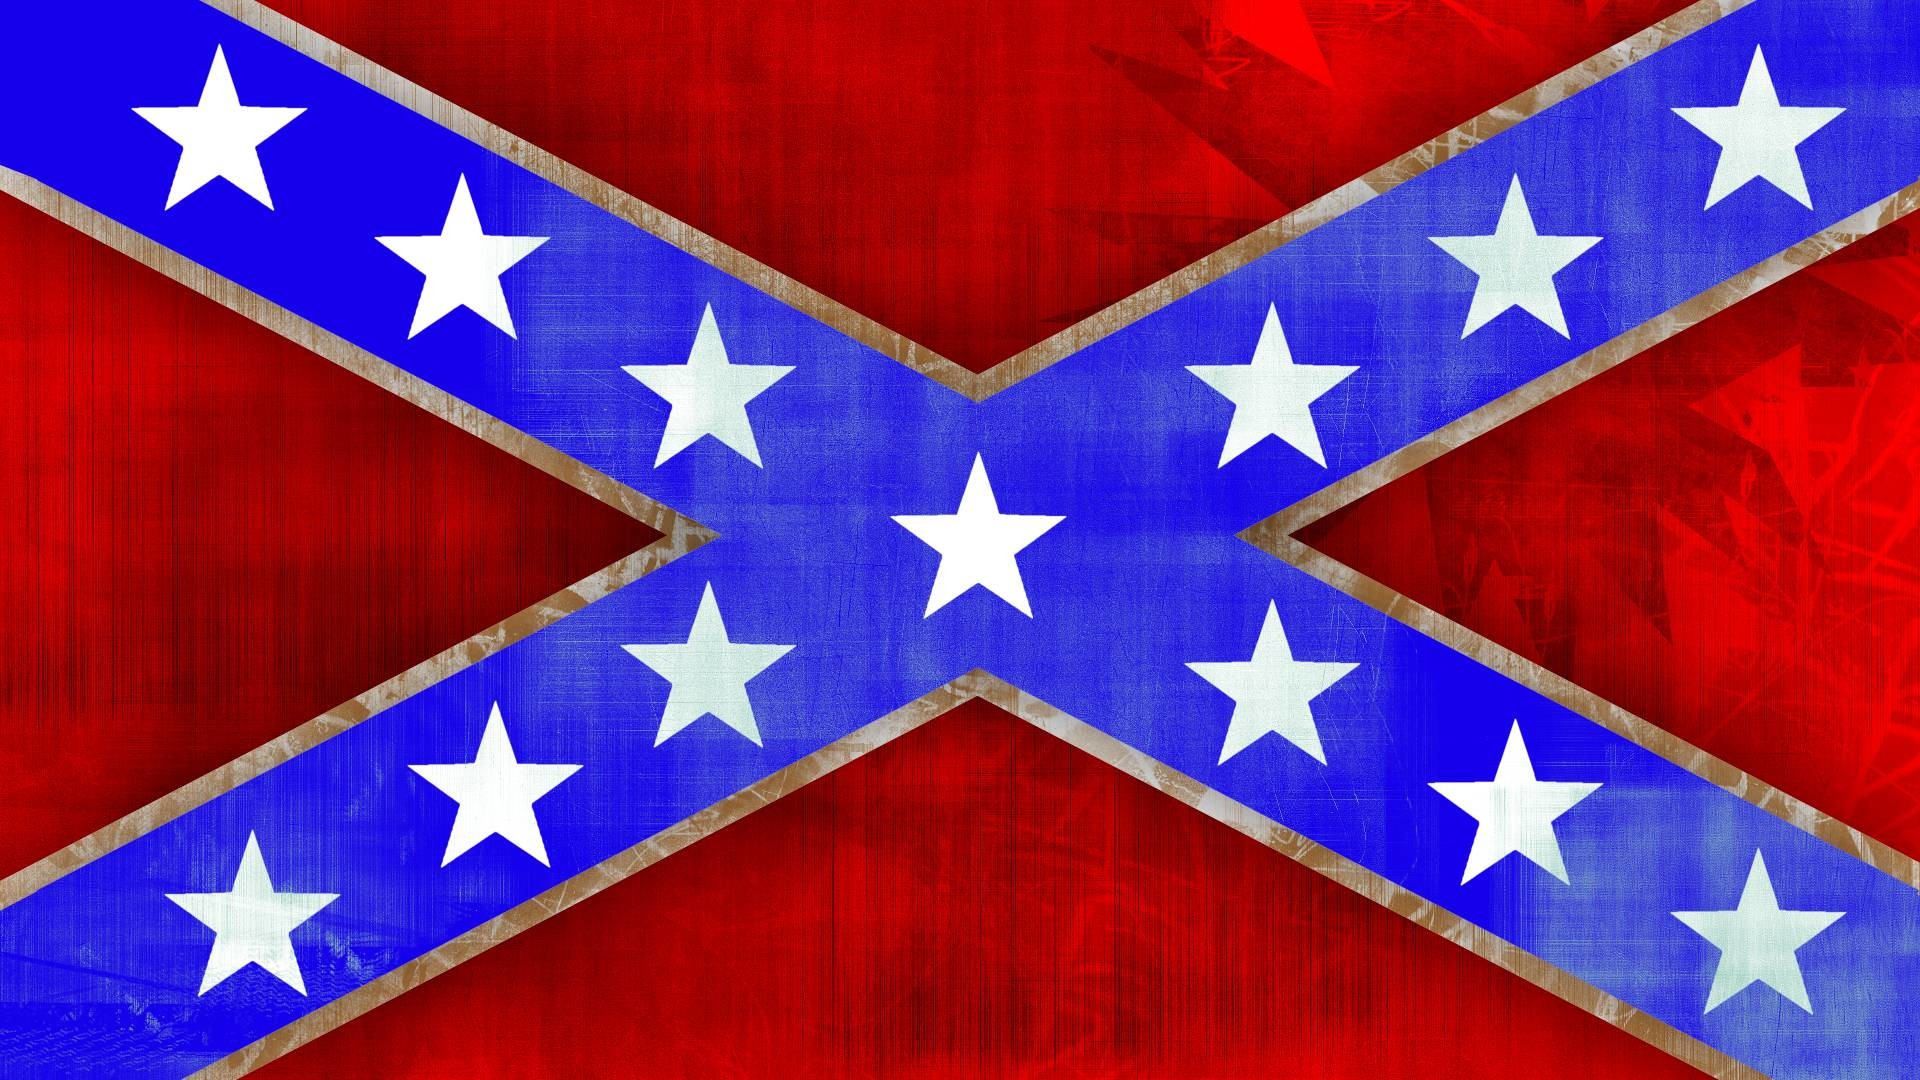 1920x1080 Cool Confederate Flag Wallpapers Images Pictures